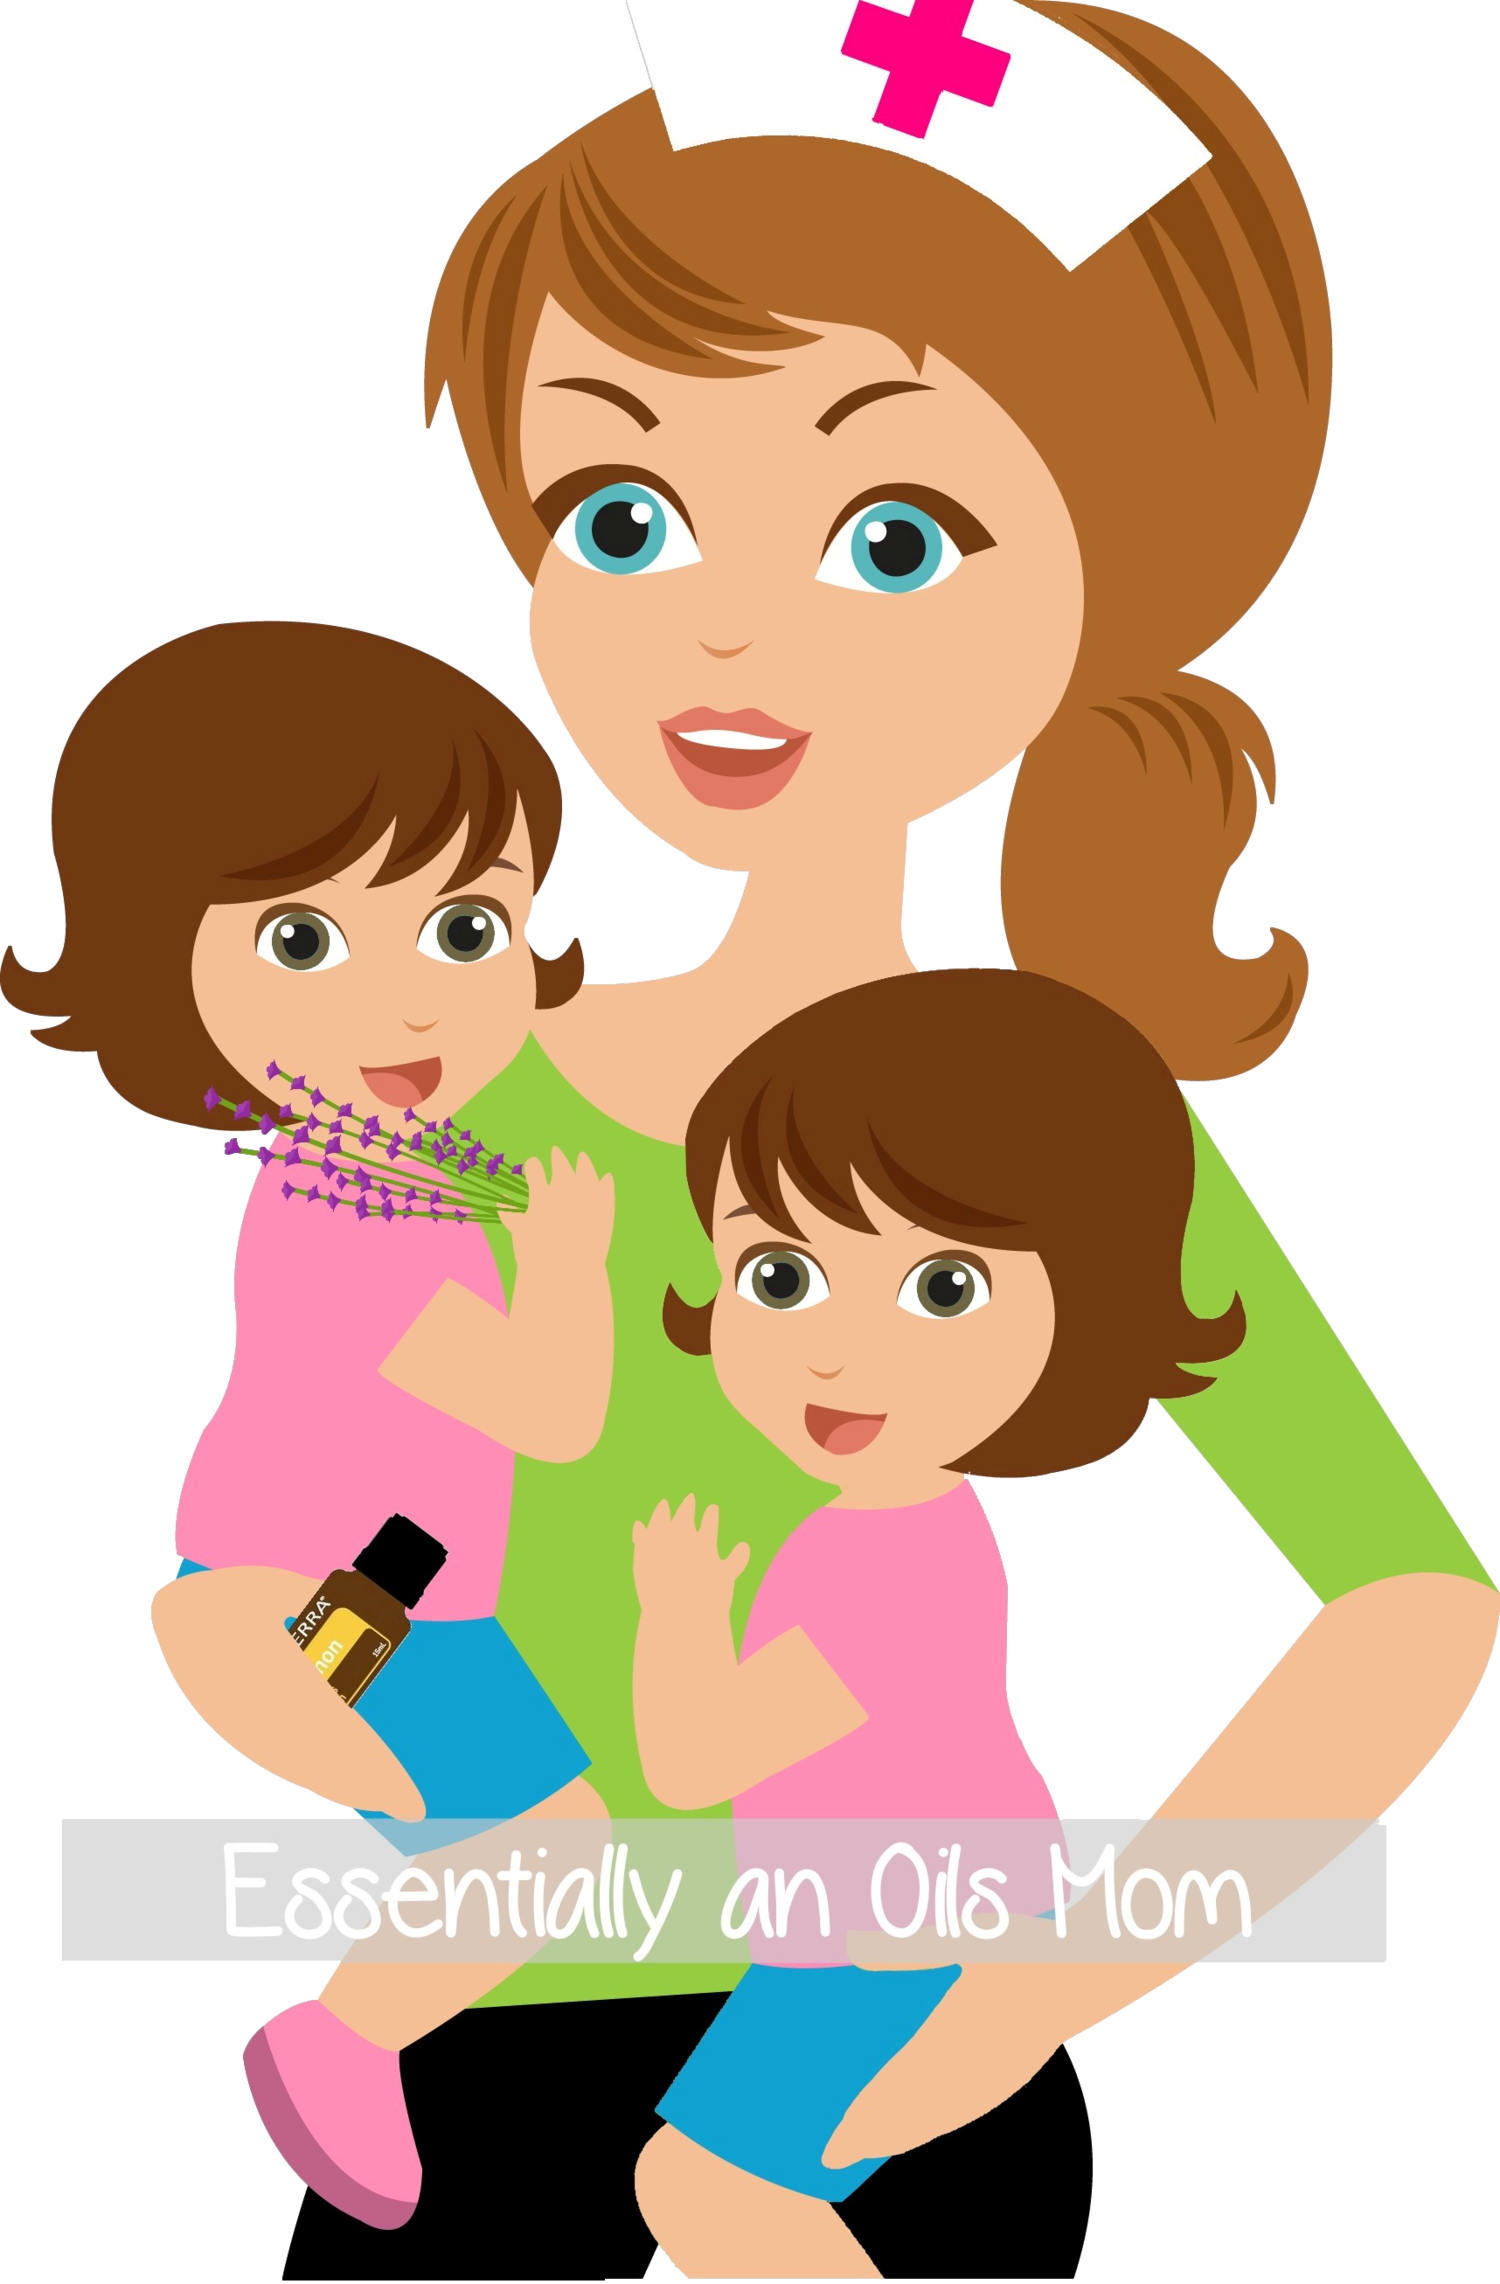 Essential oils for potty. Clipart mom momma